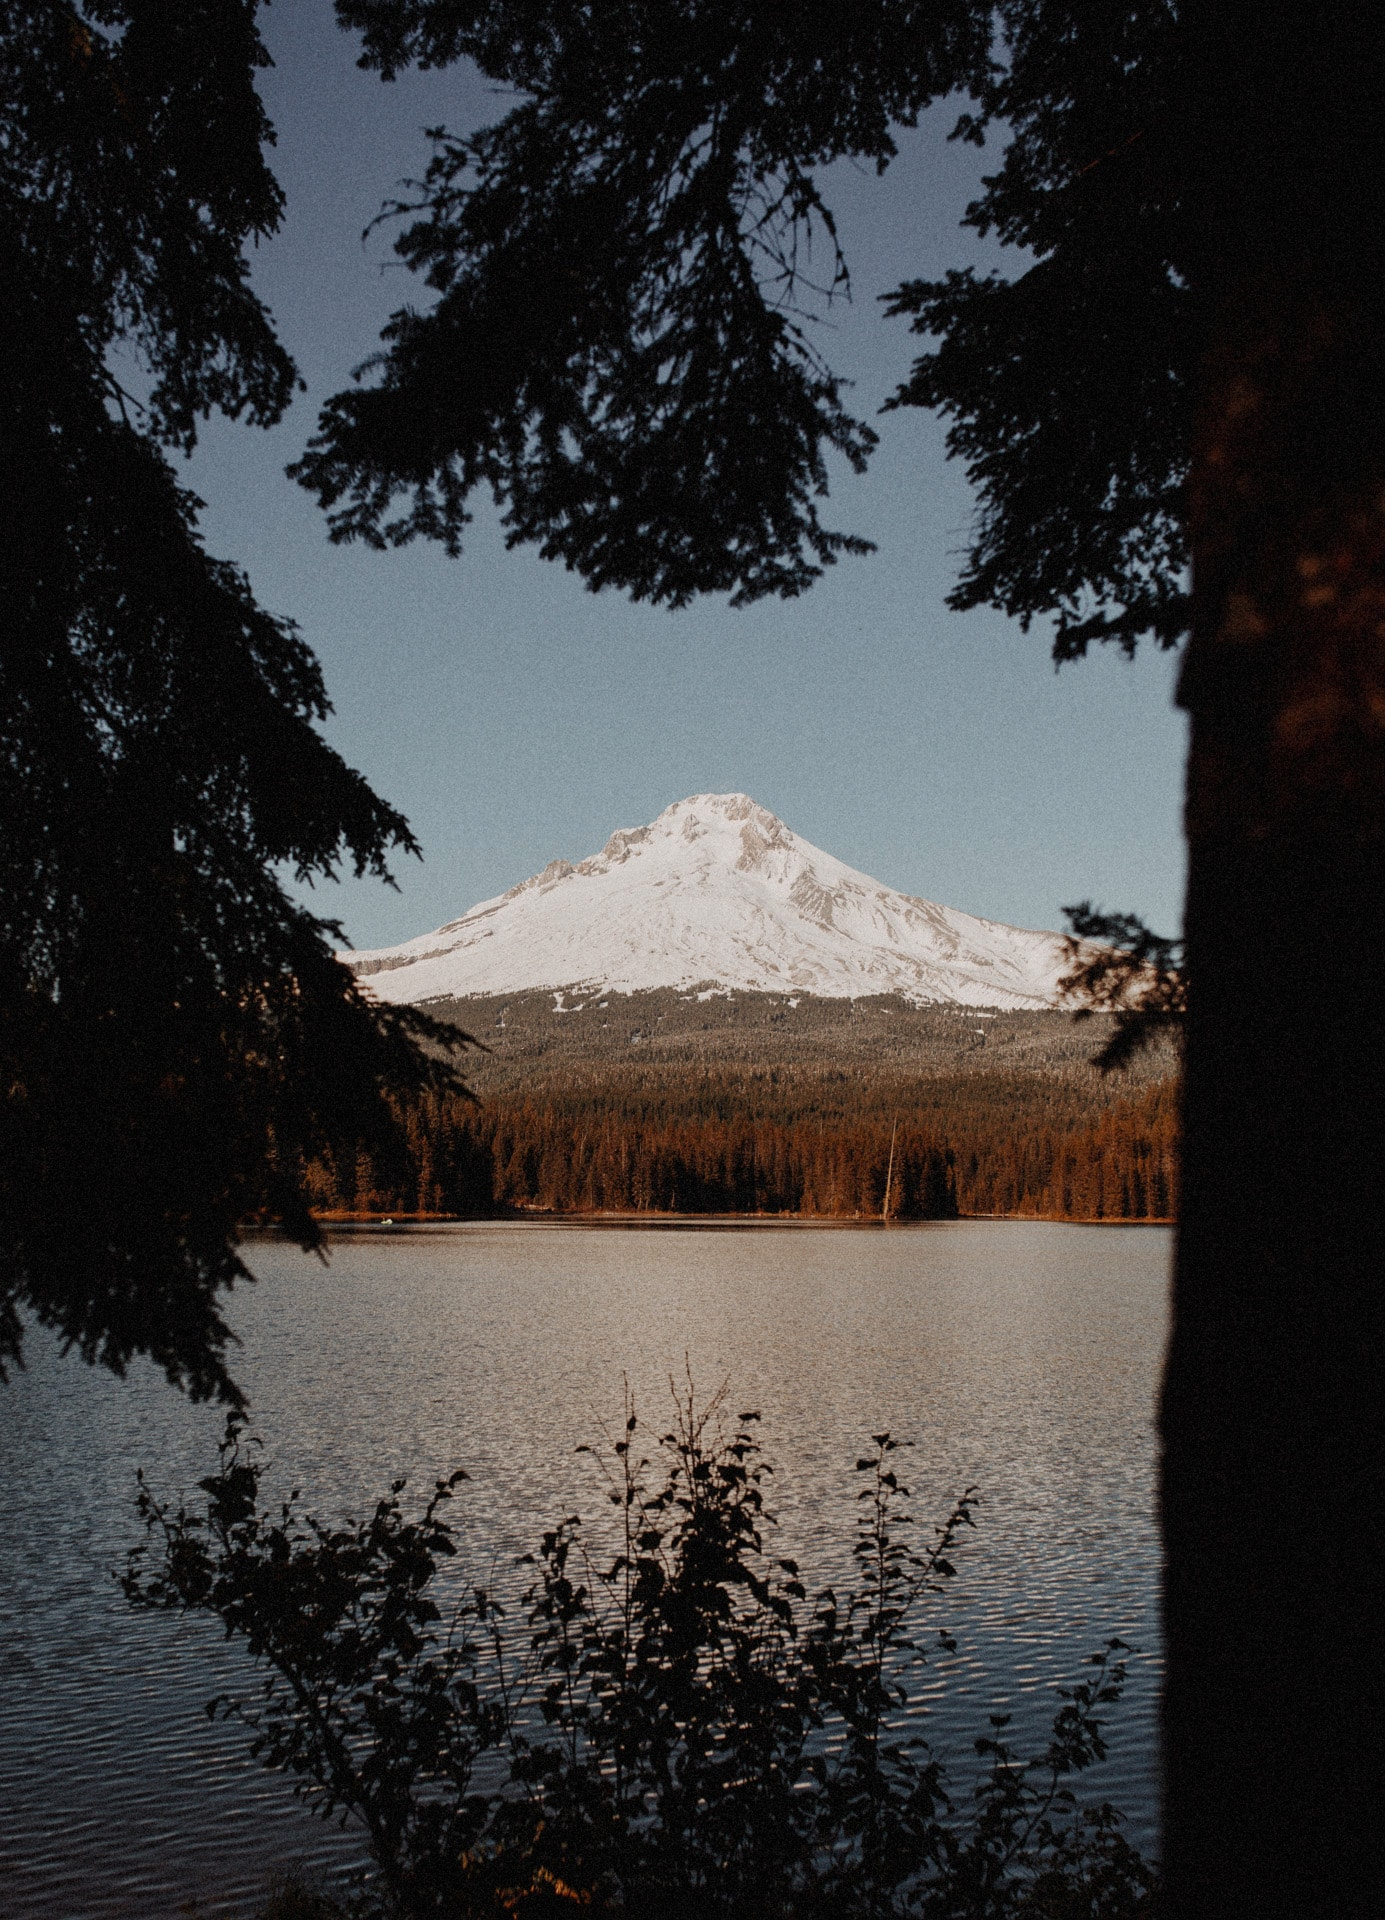 View of Trillium Lake and Mount Hood